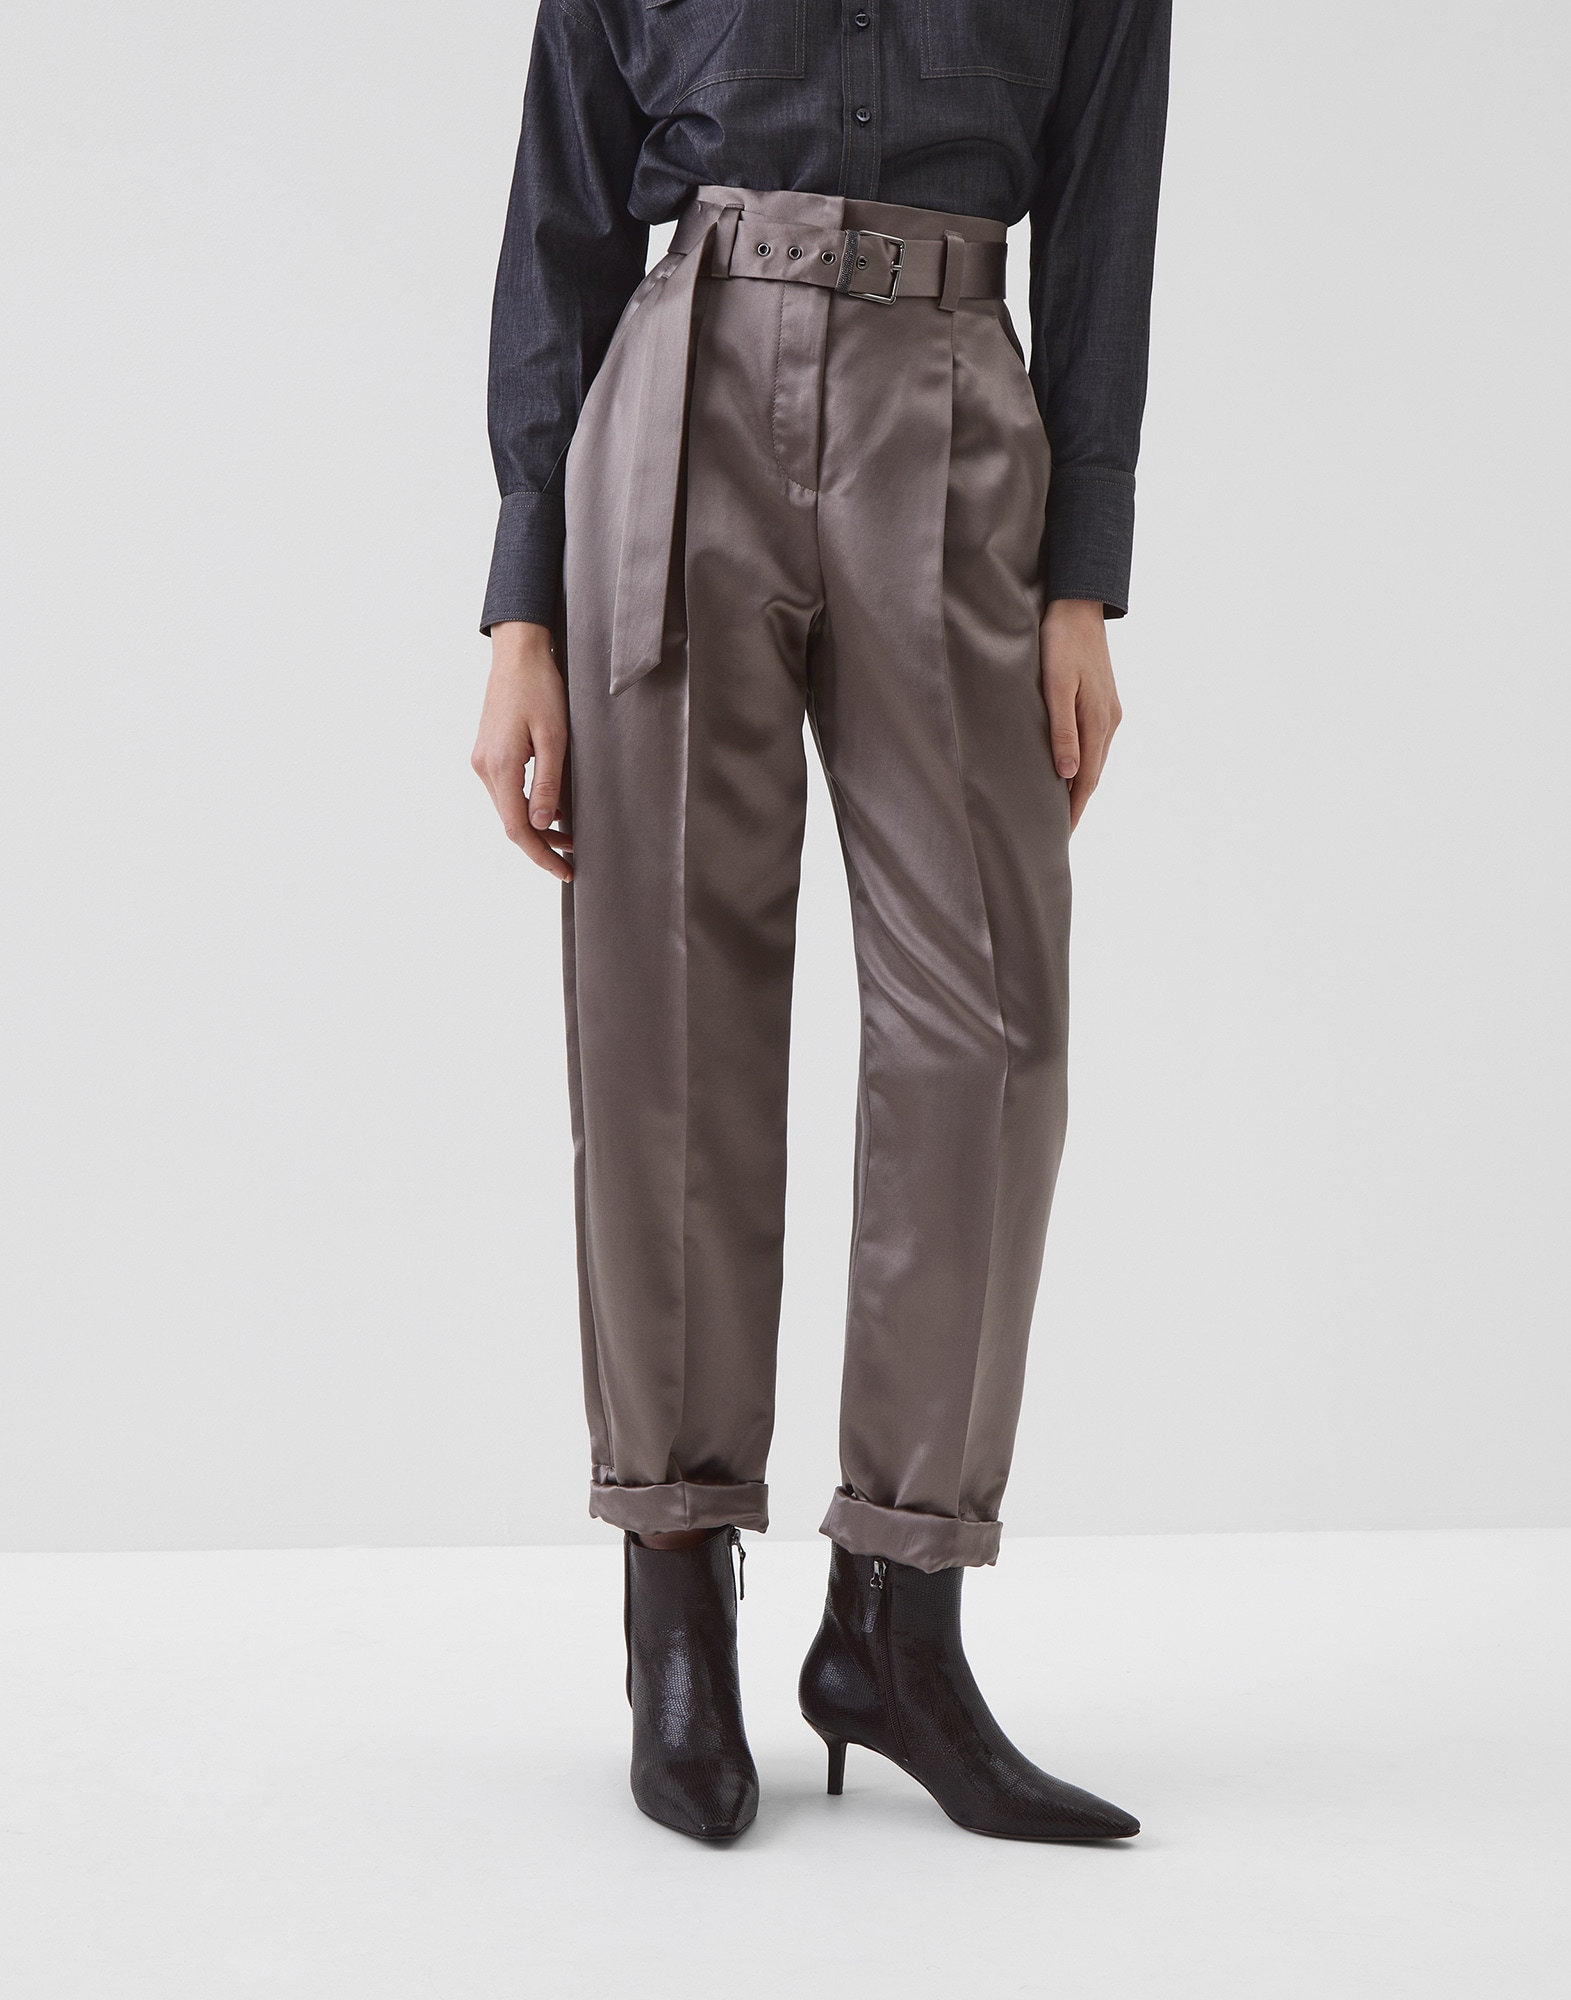 Trousers Mud Woman 0 - Brunello Cucinelli